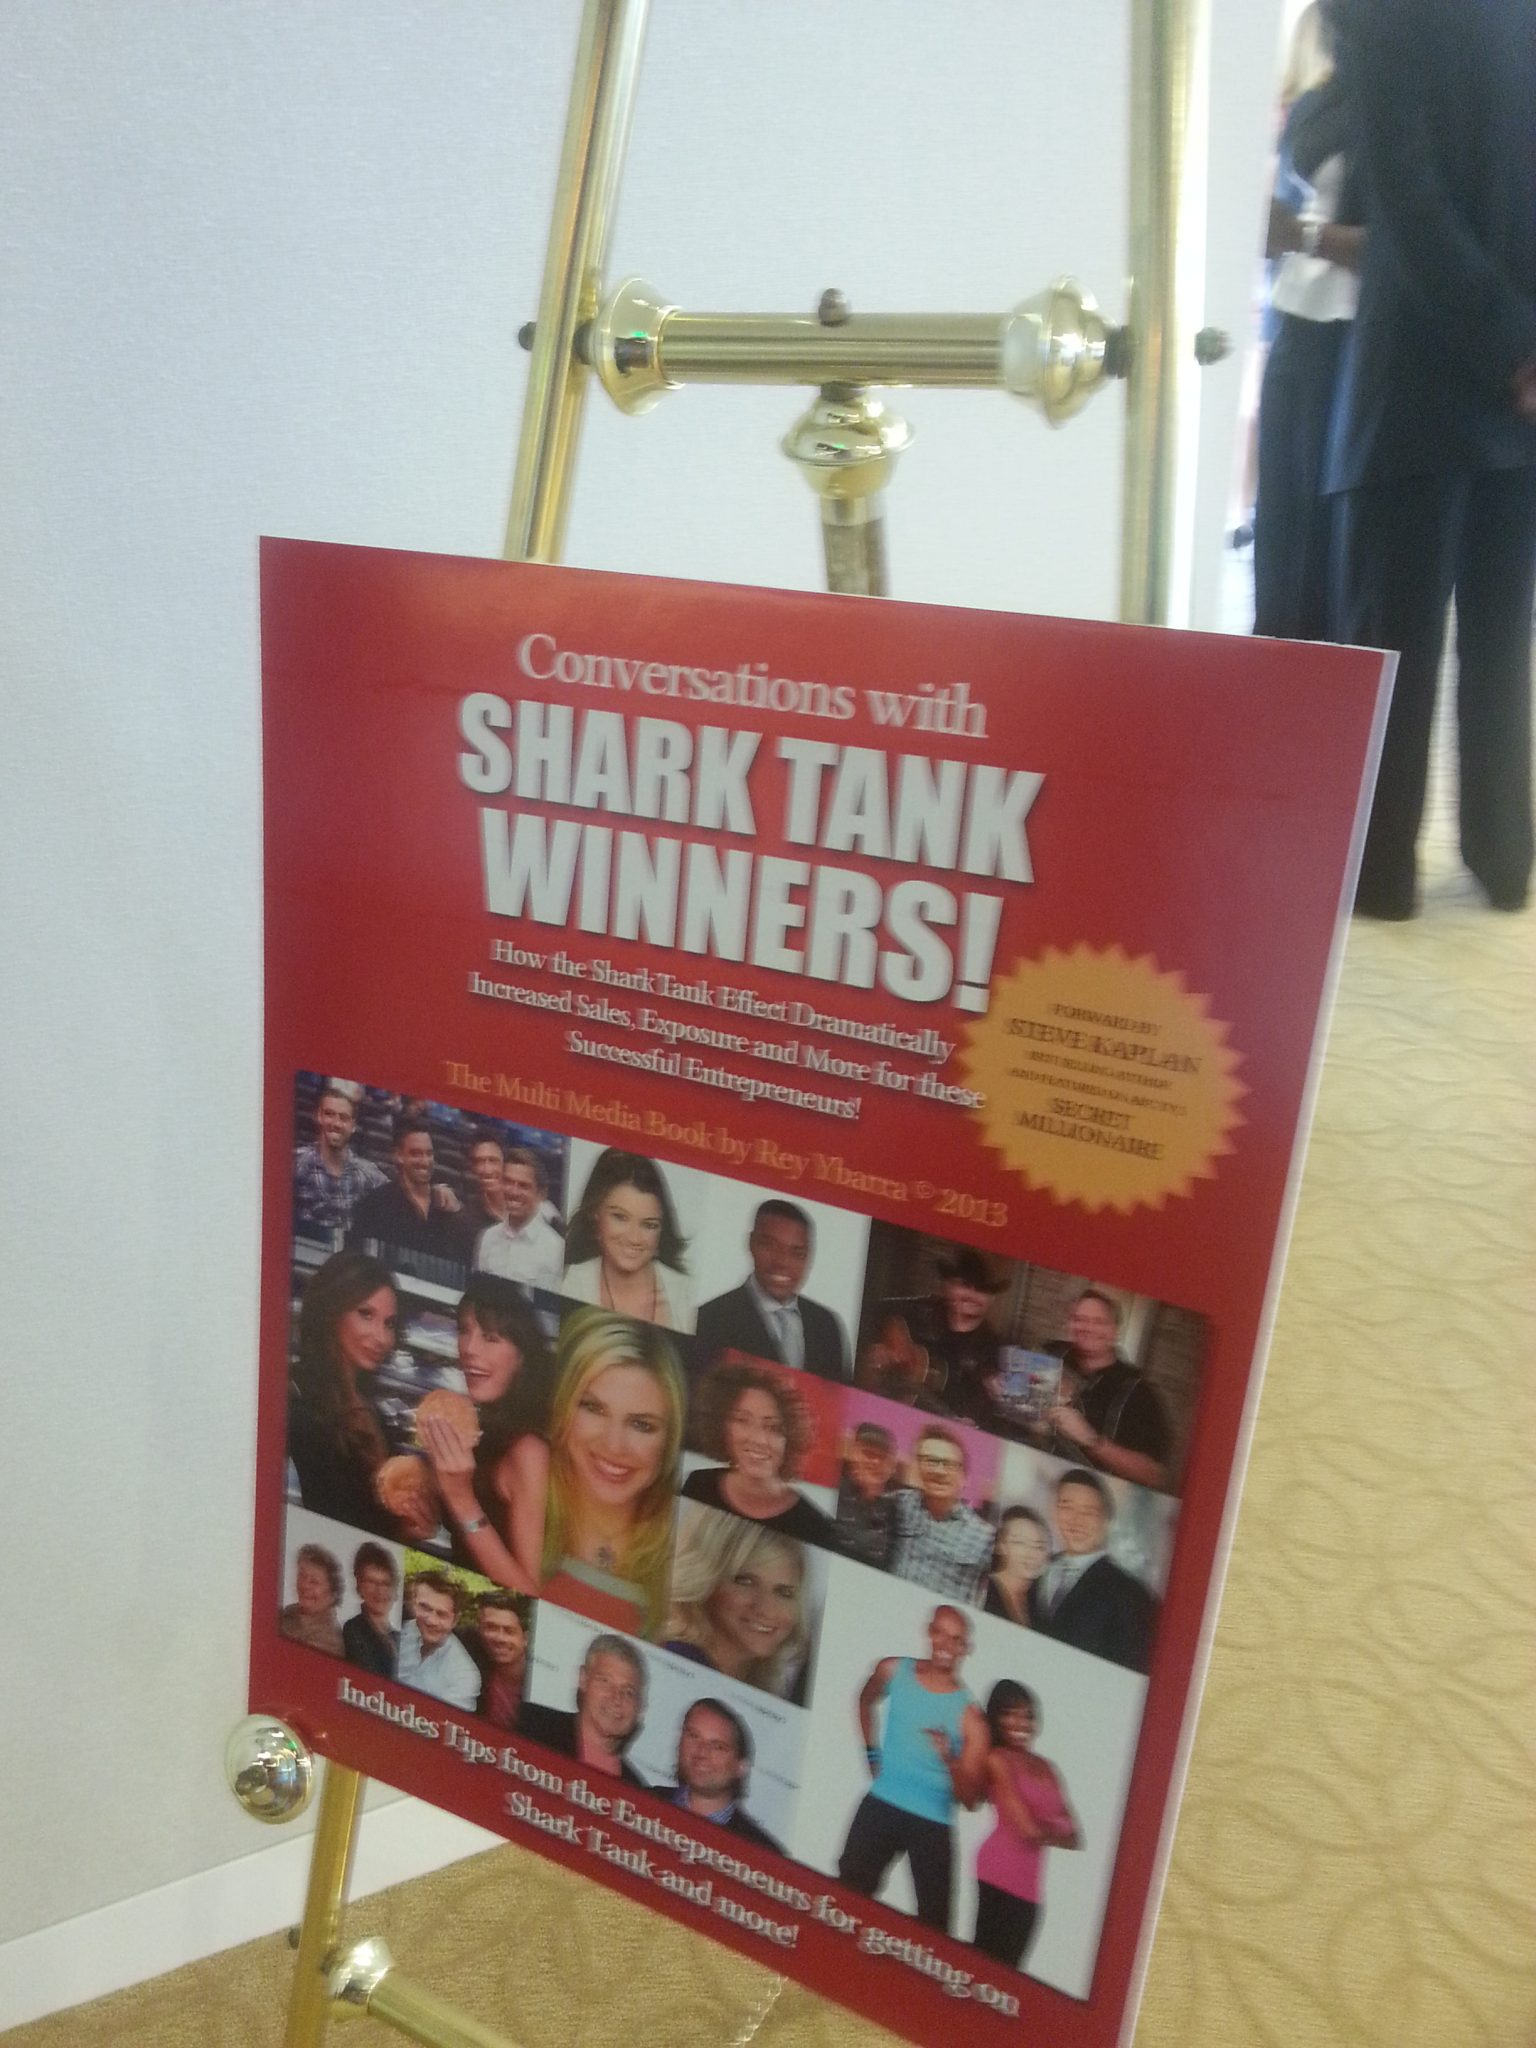 Conversations with Shark Tank Winners Book Launch by Rey Ybarra